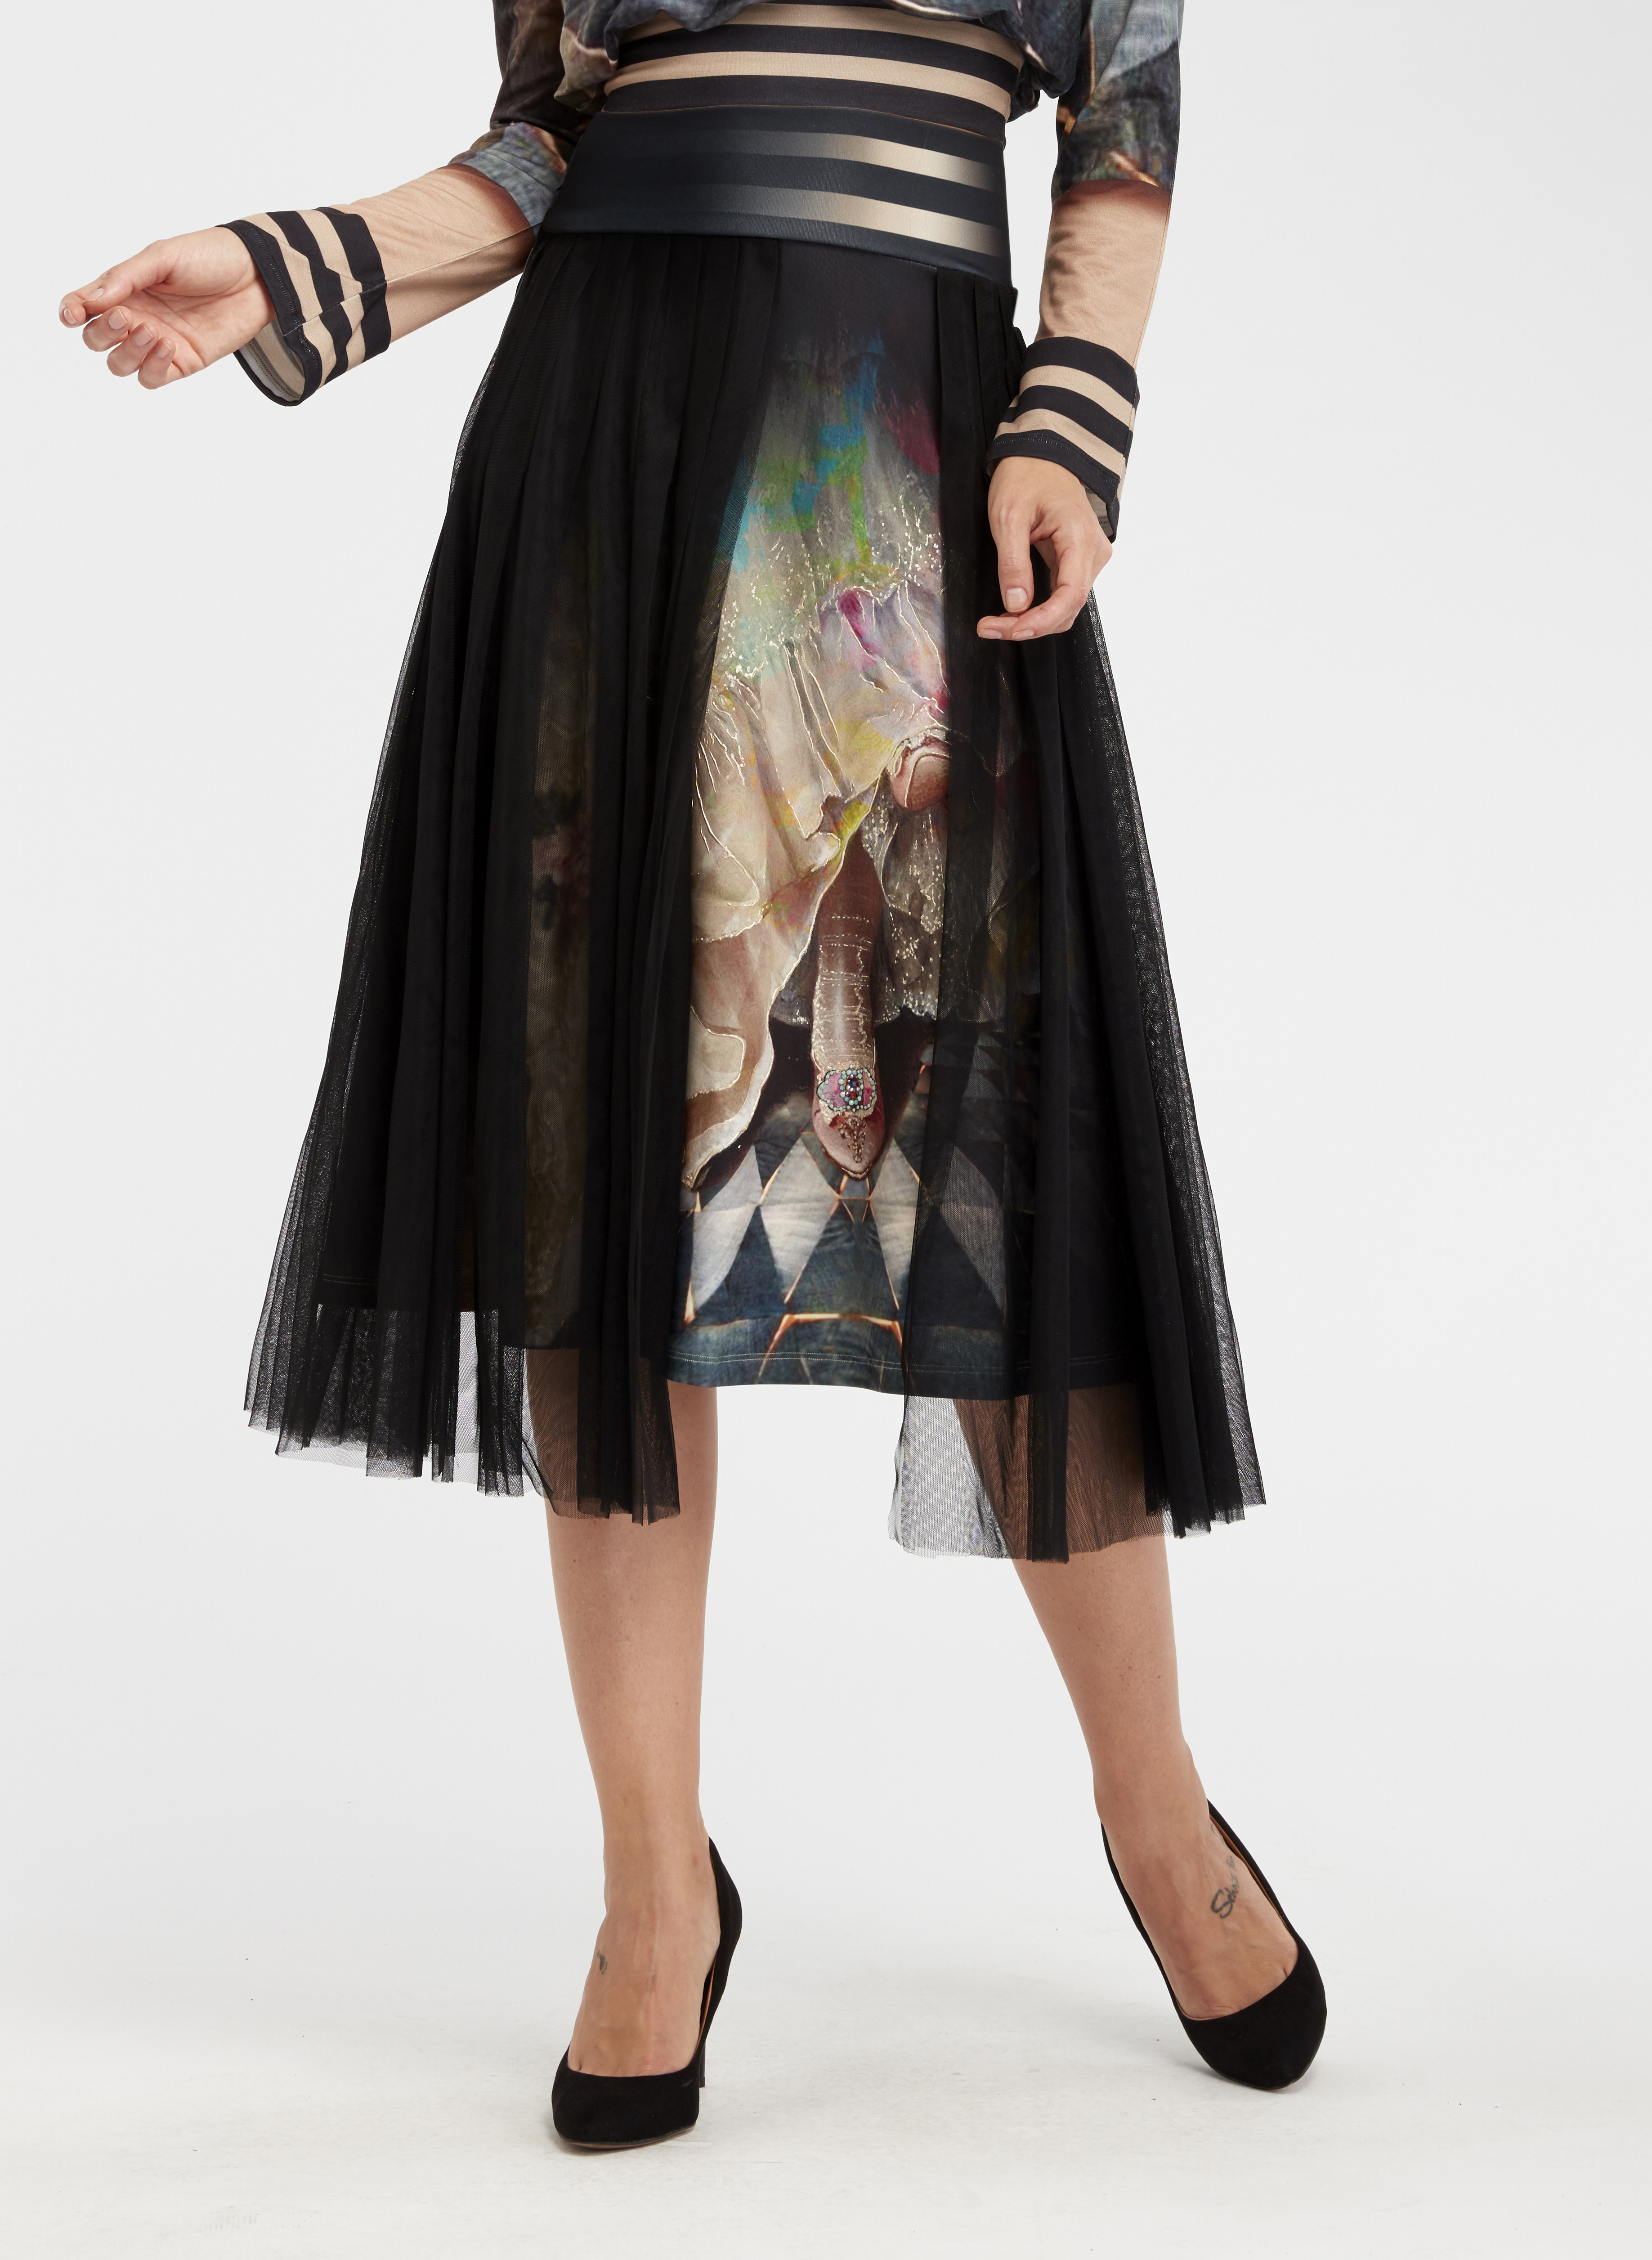 IPNG: Who Is The Woman Behind This Illusion Flared Skirt IPNG_WISKH-005